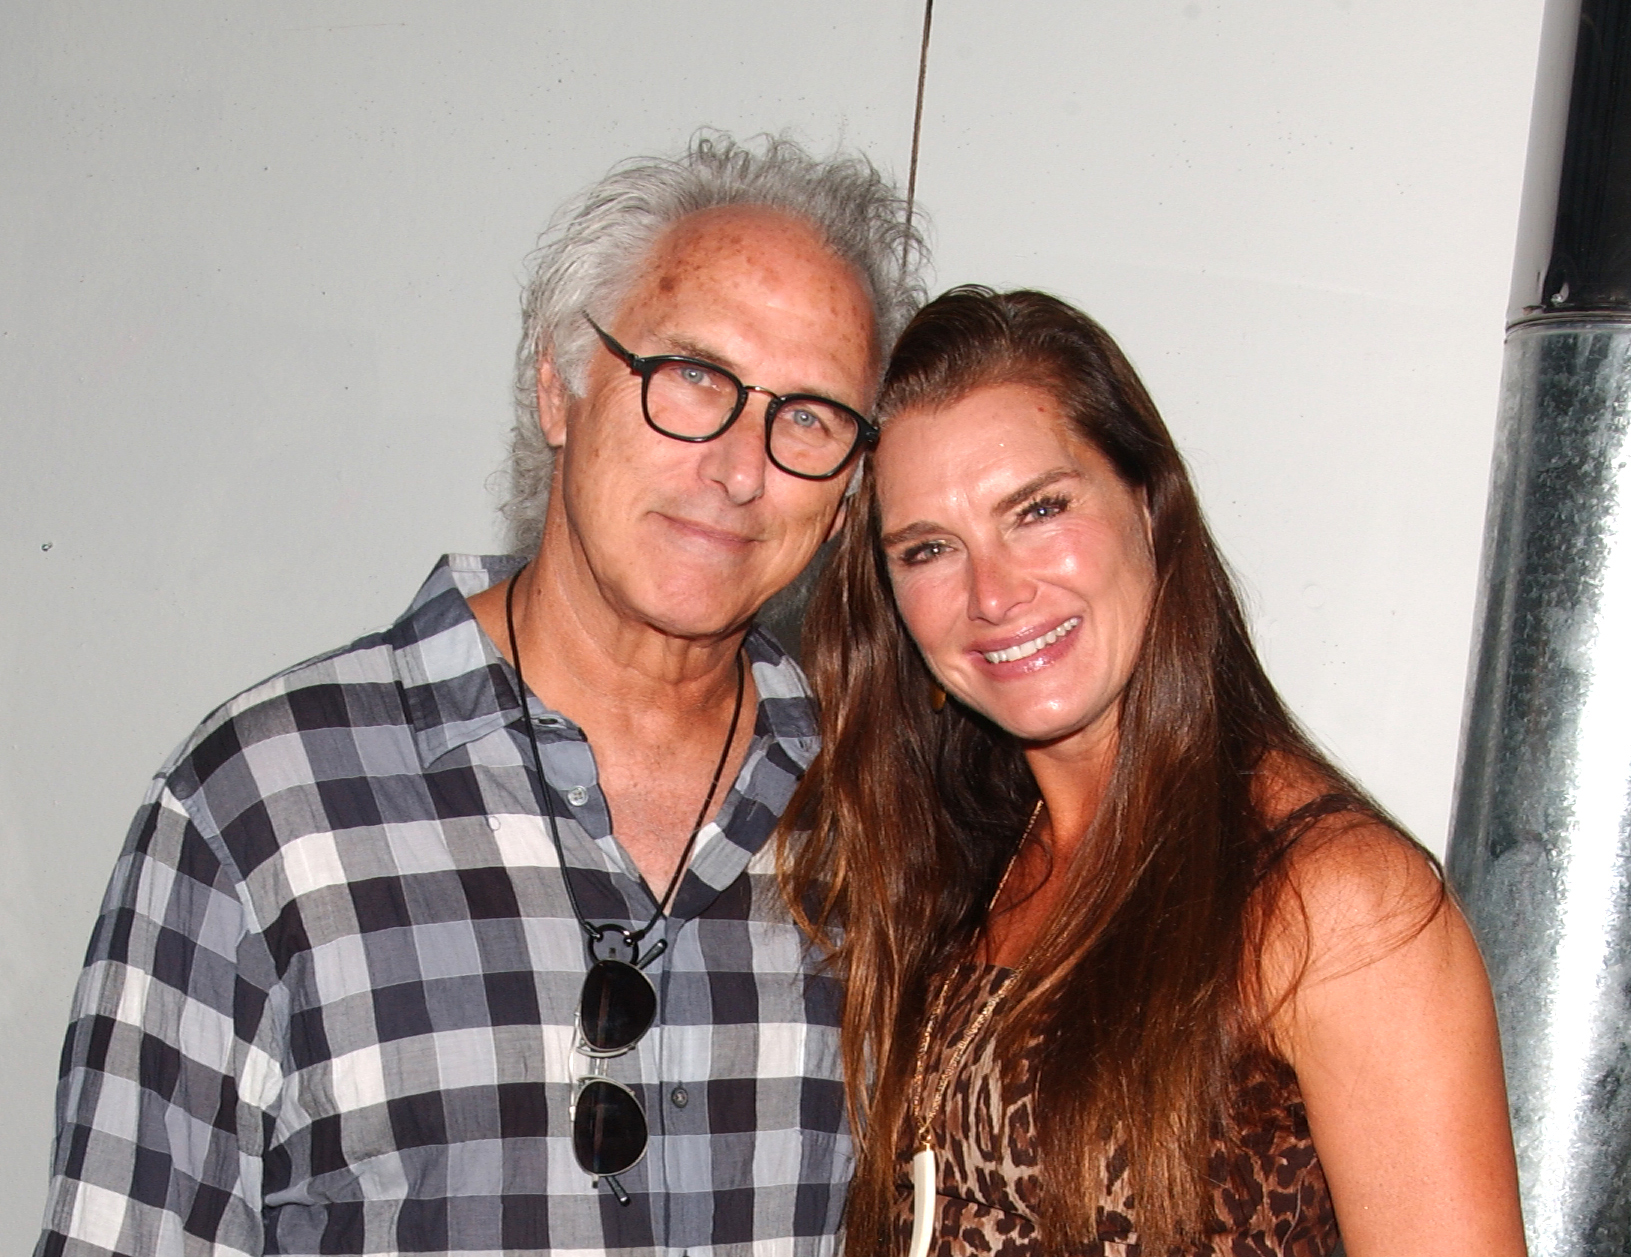 Artist Eric Fischl and Actress/Model Brooke Shields attend an event in celebration of Eric's forthcoming exhibition at the Dallas Contemporary at the former home and studio of artist Elaine de Kooing, East Hampton, NY.